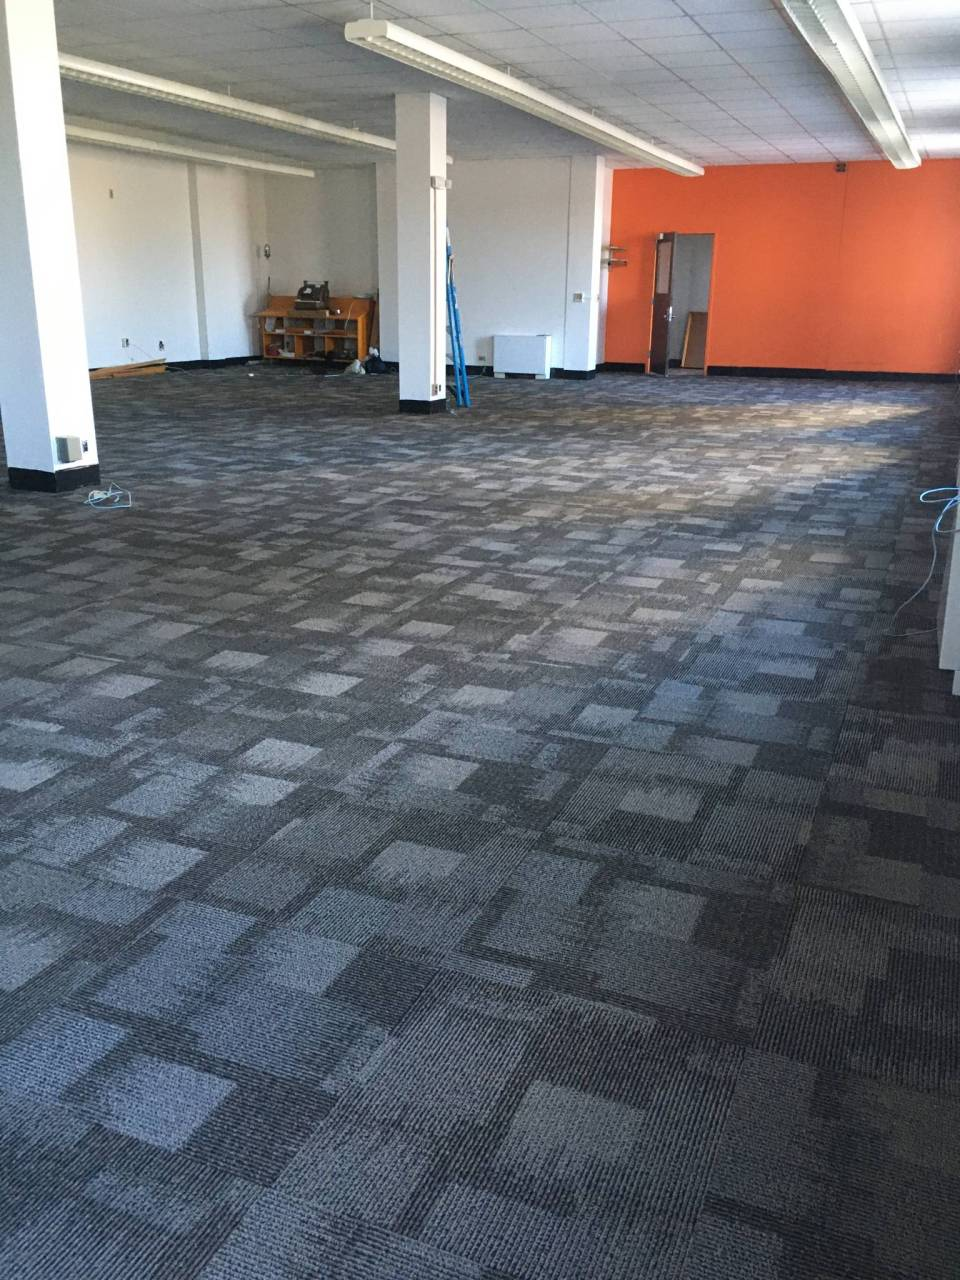 One of the greatest things about our new digs? We've connected with a building owner who shares our appreciation of reuse... he's replaced worn carpet with fresh stuff sourced via surplus/returns (and he happily used our own orange paint to give that already-orange wall a fresh coat).